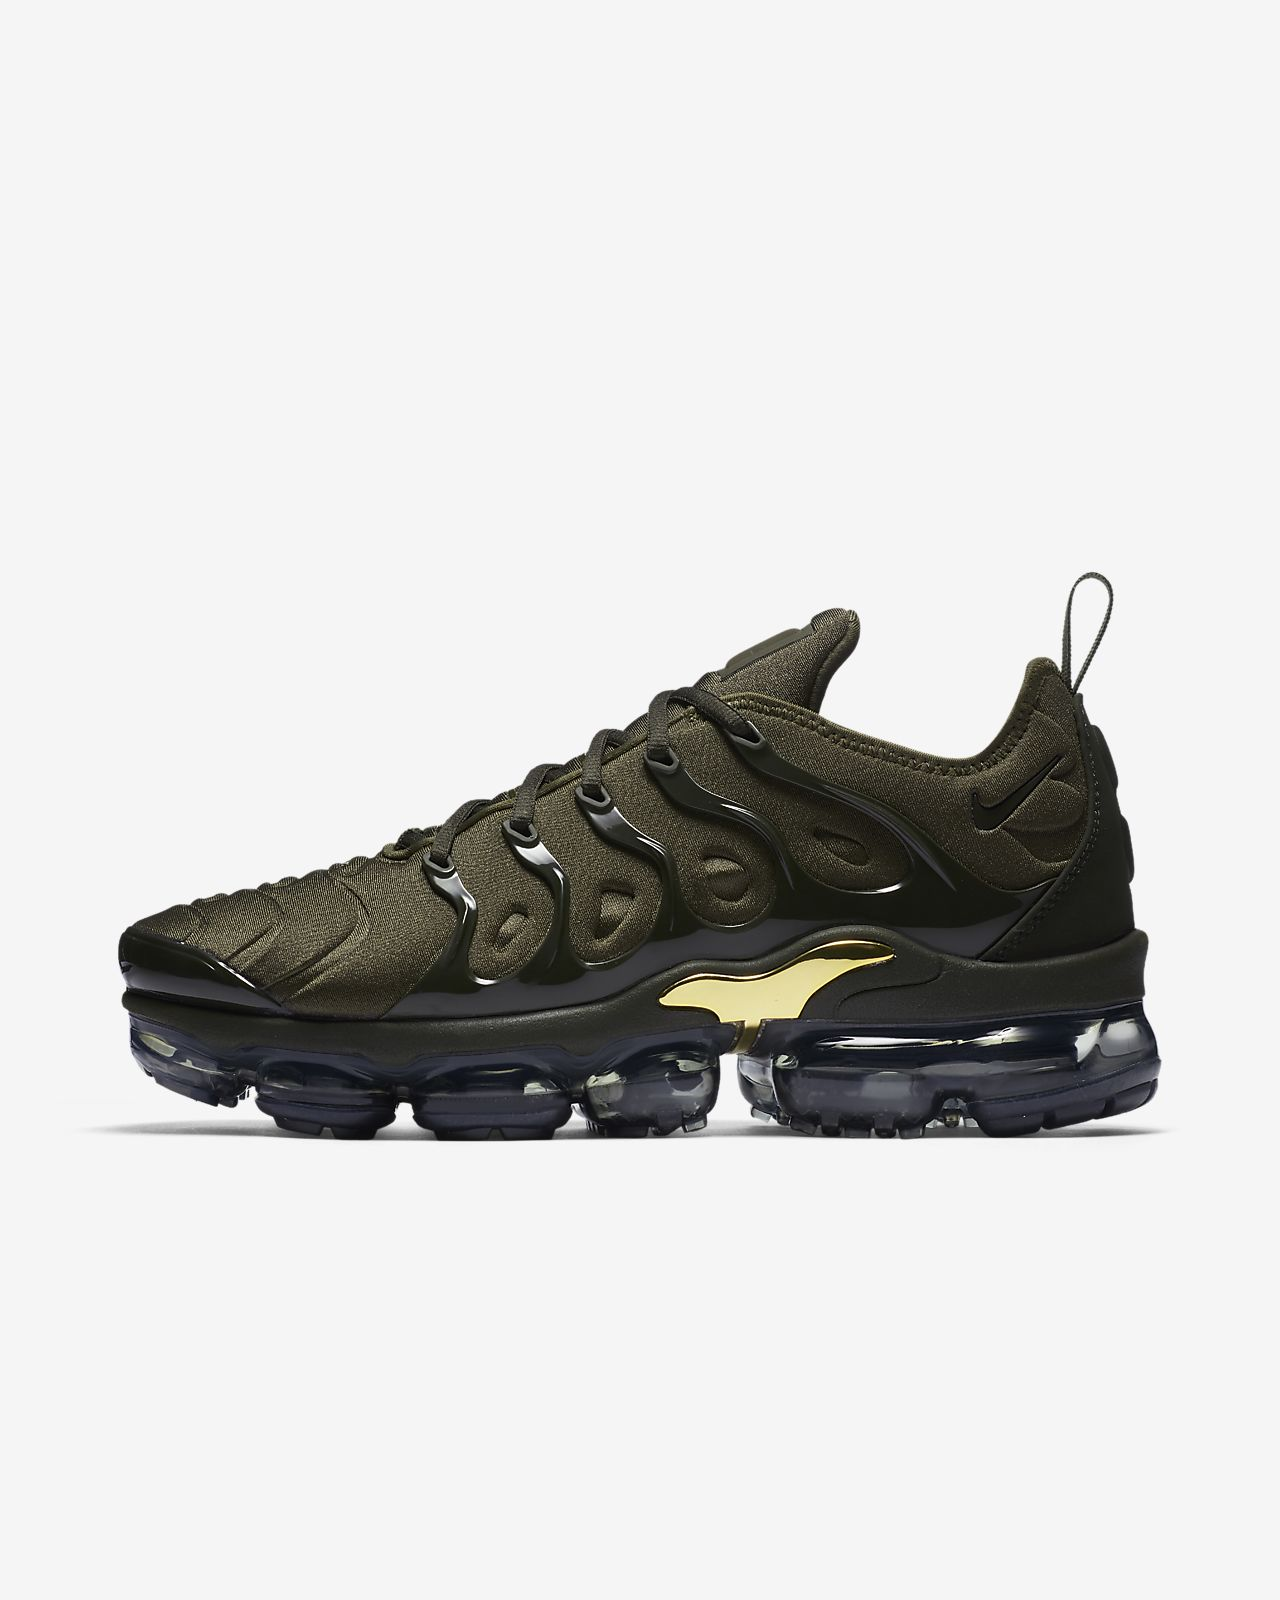 super popular 4f3f1 21779 ... Nike Air VaporMax Plus Men s Shoe